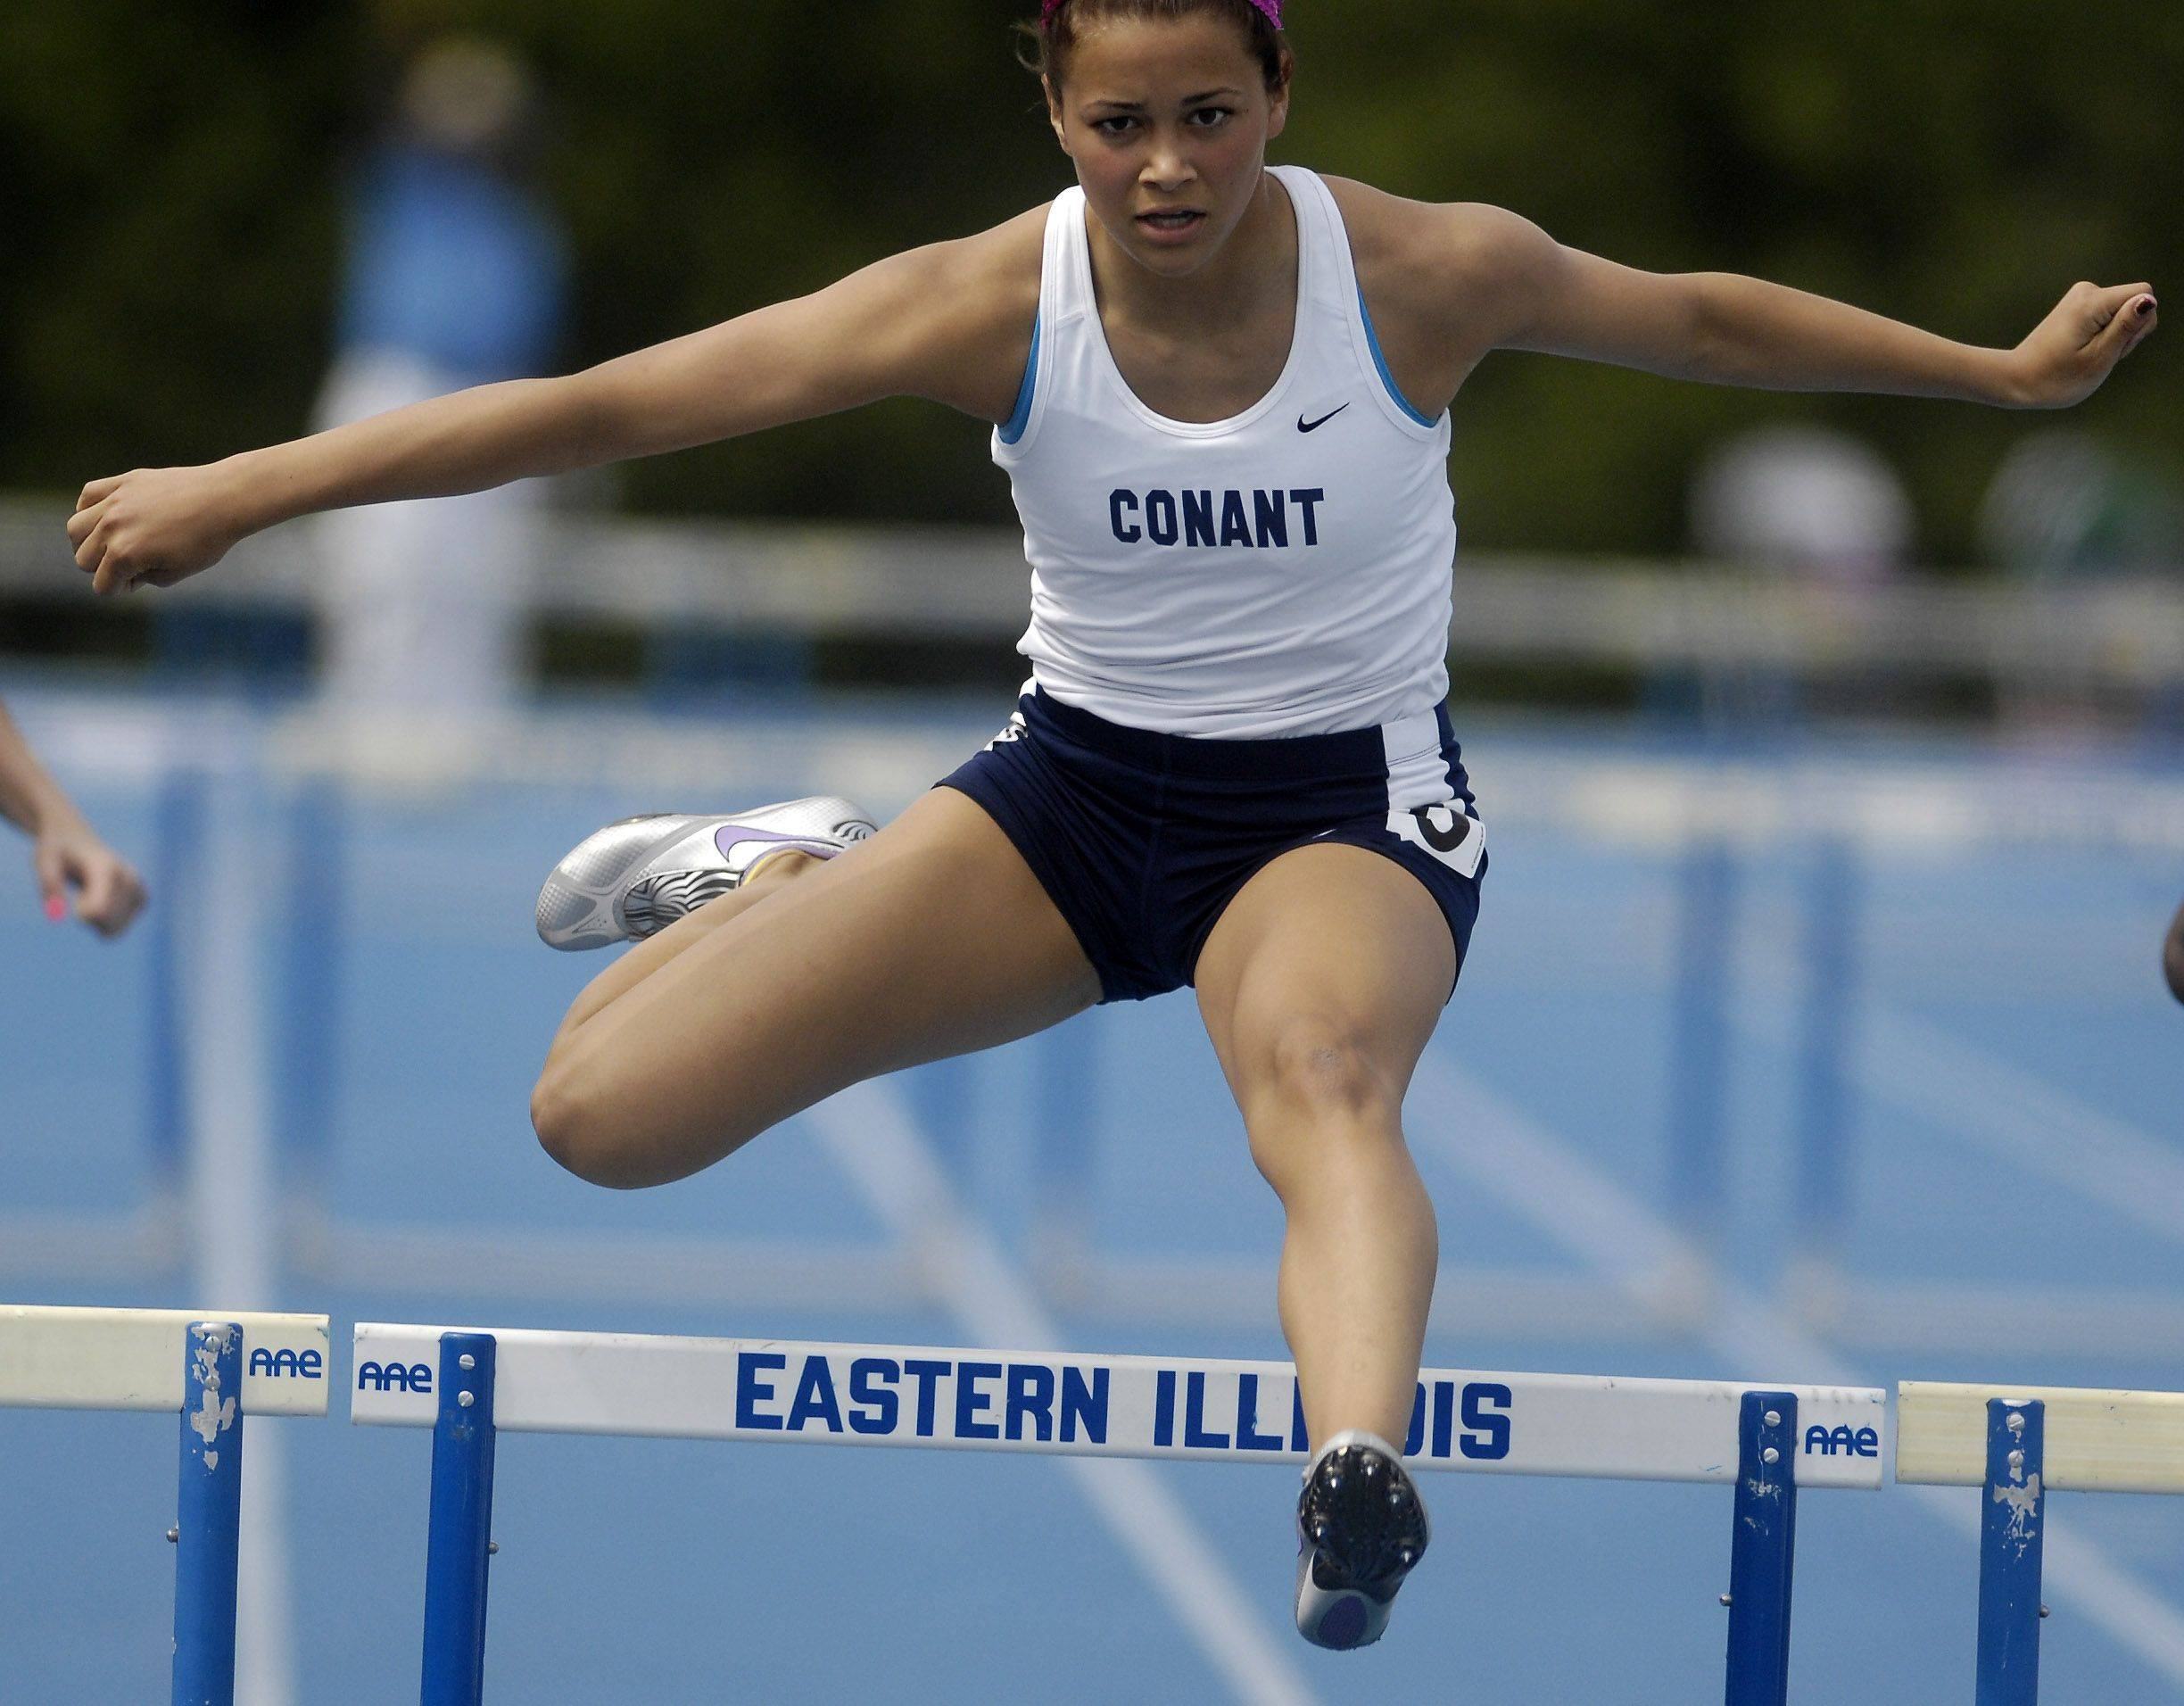 Conant's Sarah Gorden wins her heat of the 300-meter low hurdles during Friday's preliminaries of the IHSA girls state track finals.